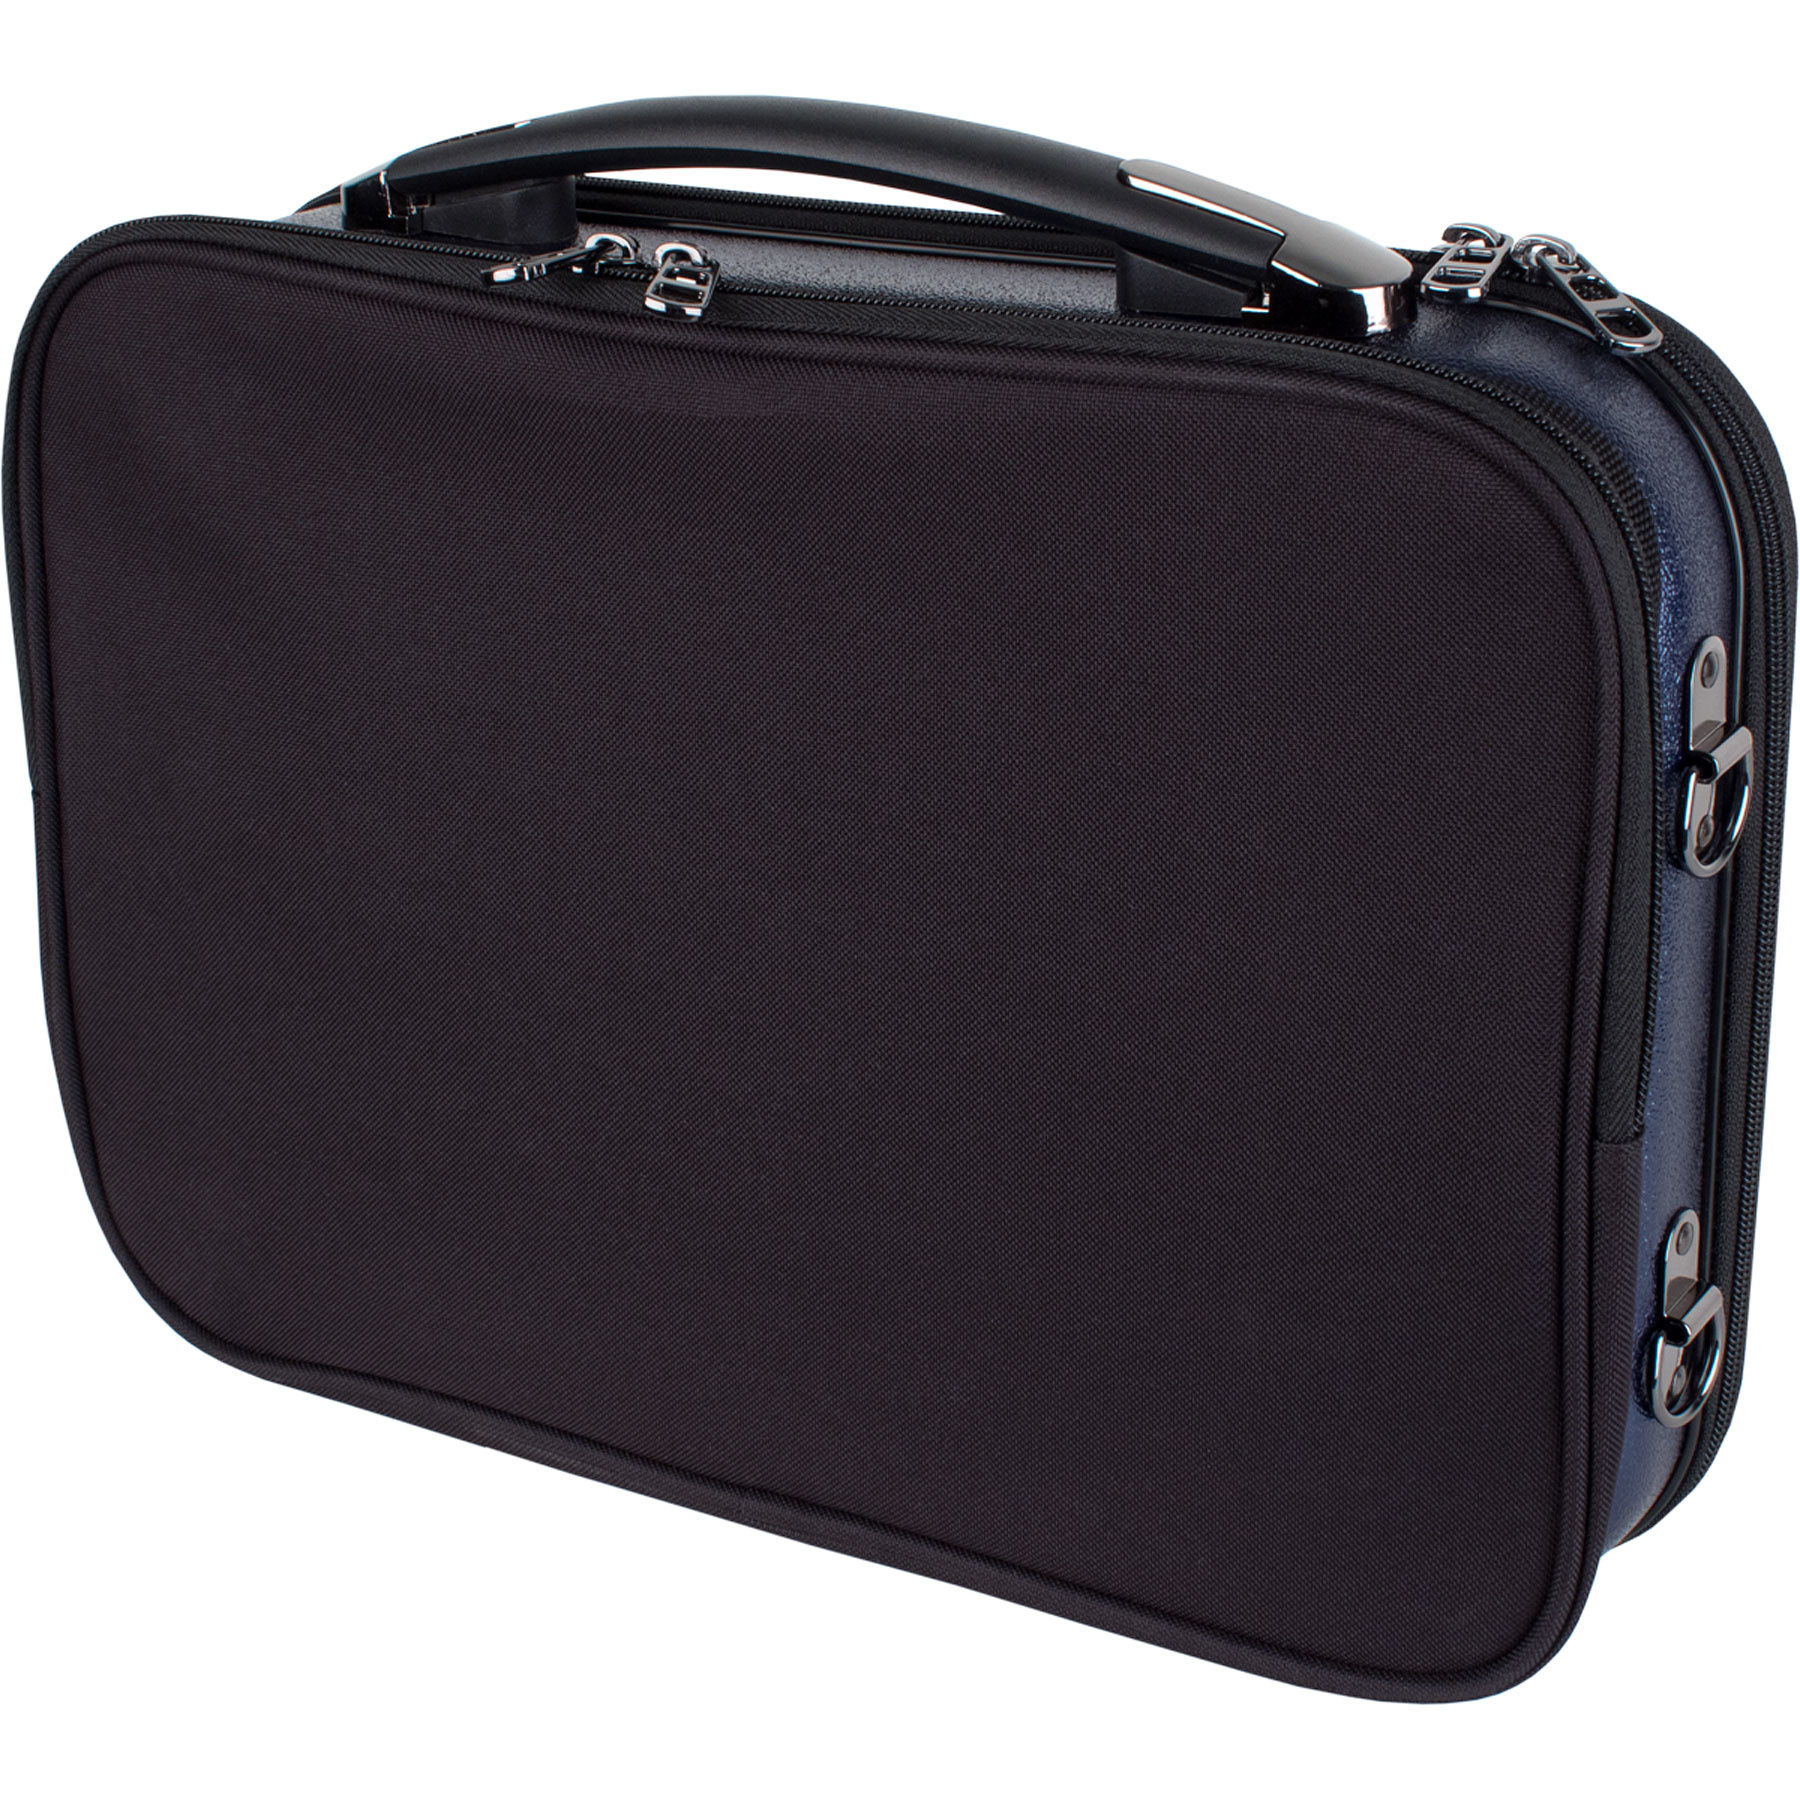 Protec Protec Bb Clarinet ZIP Case with Removable Music Pocket